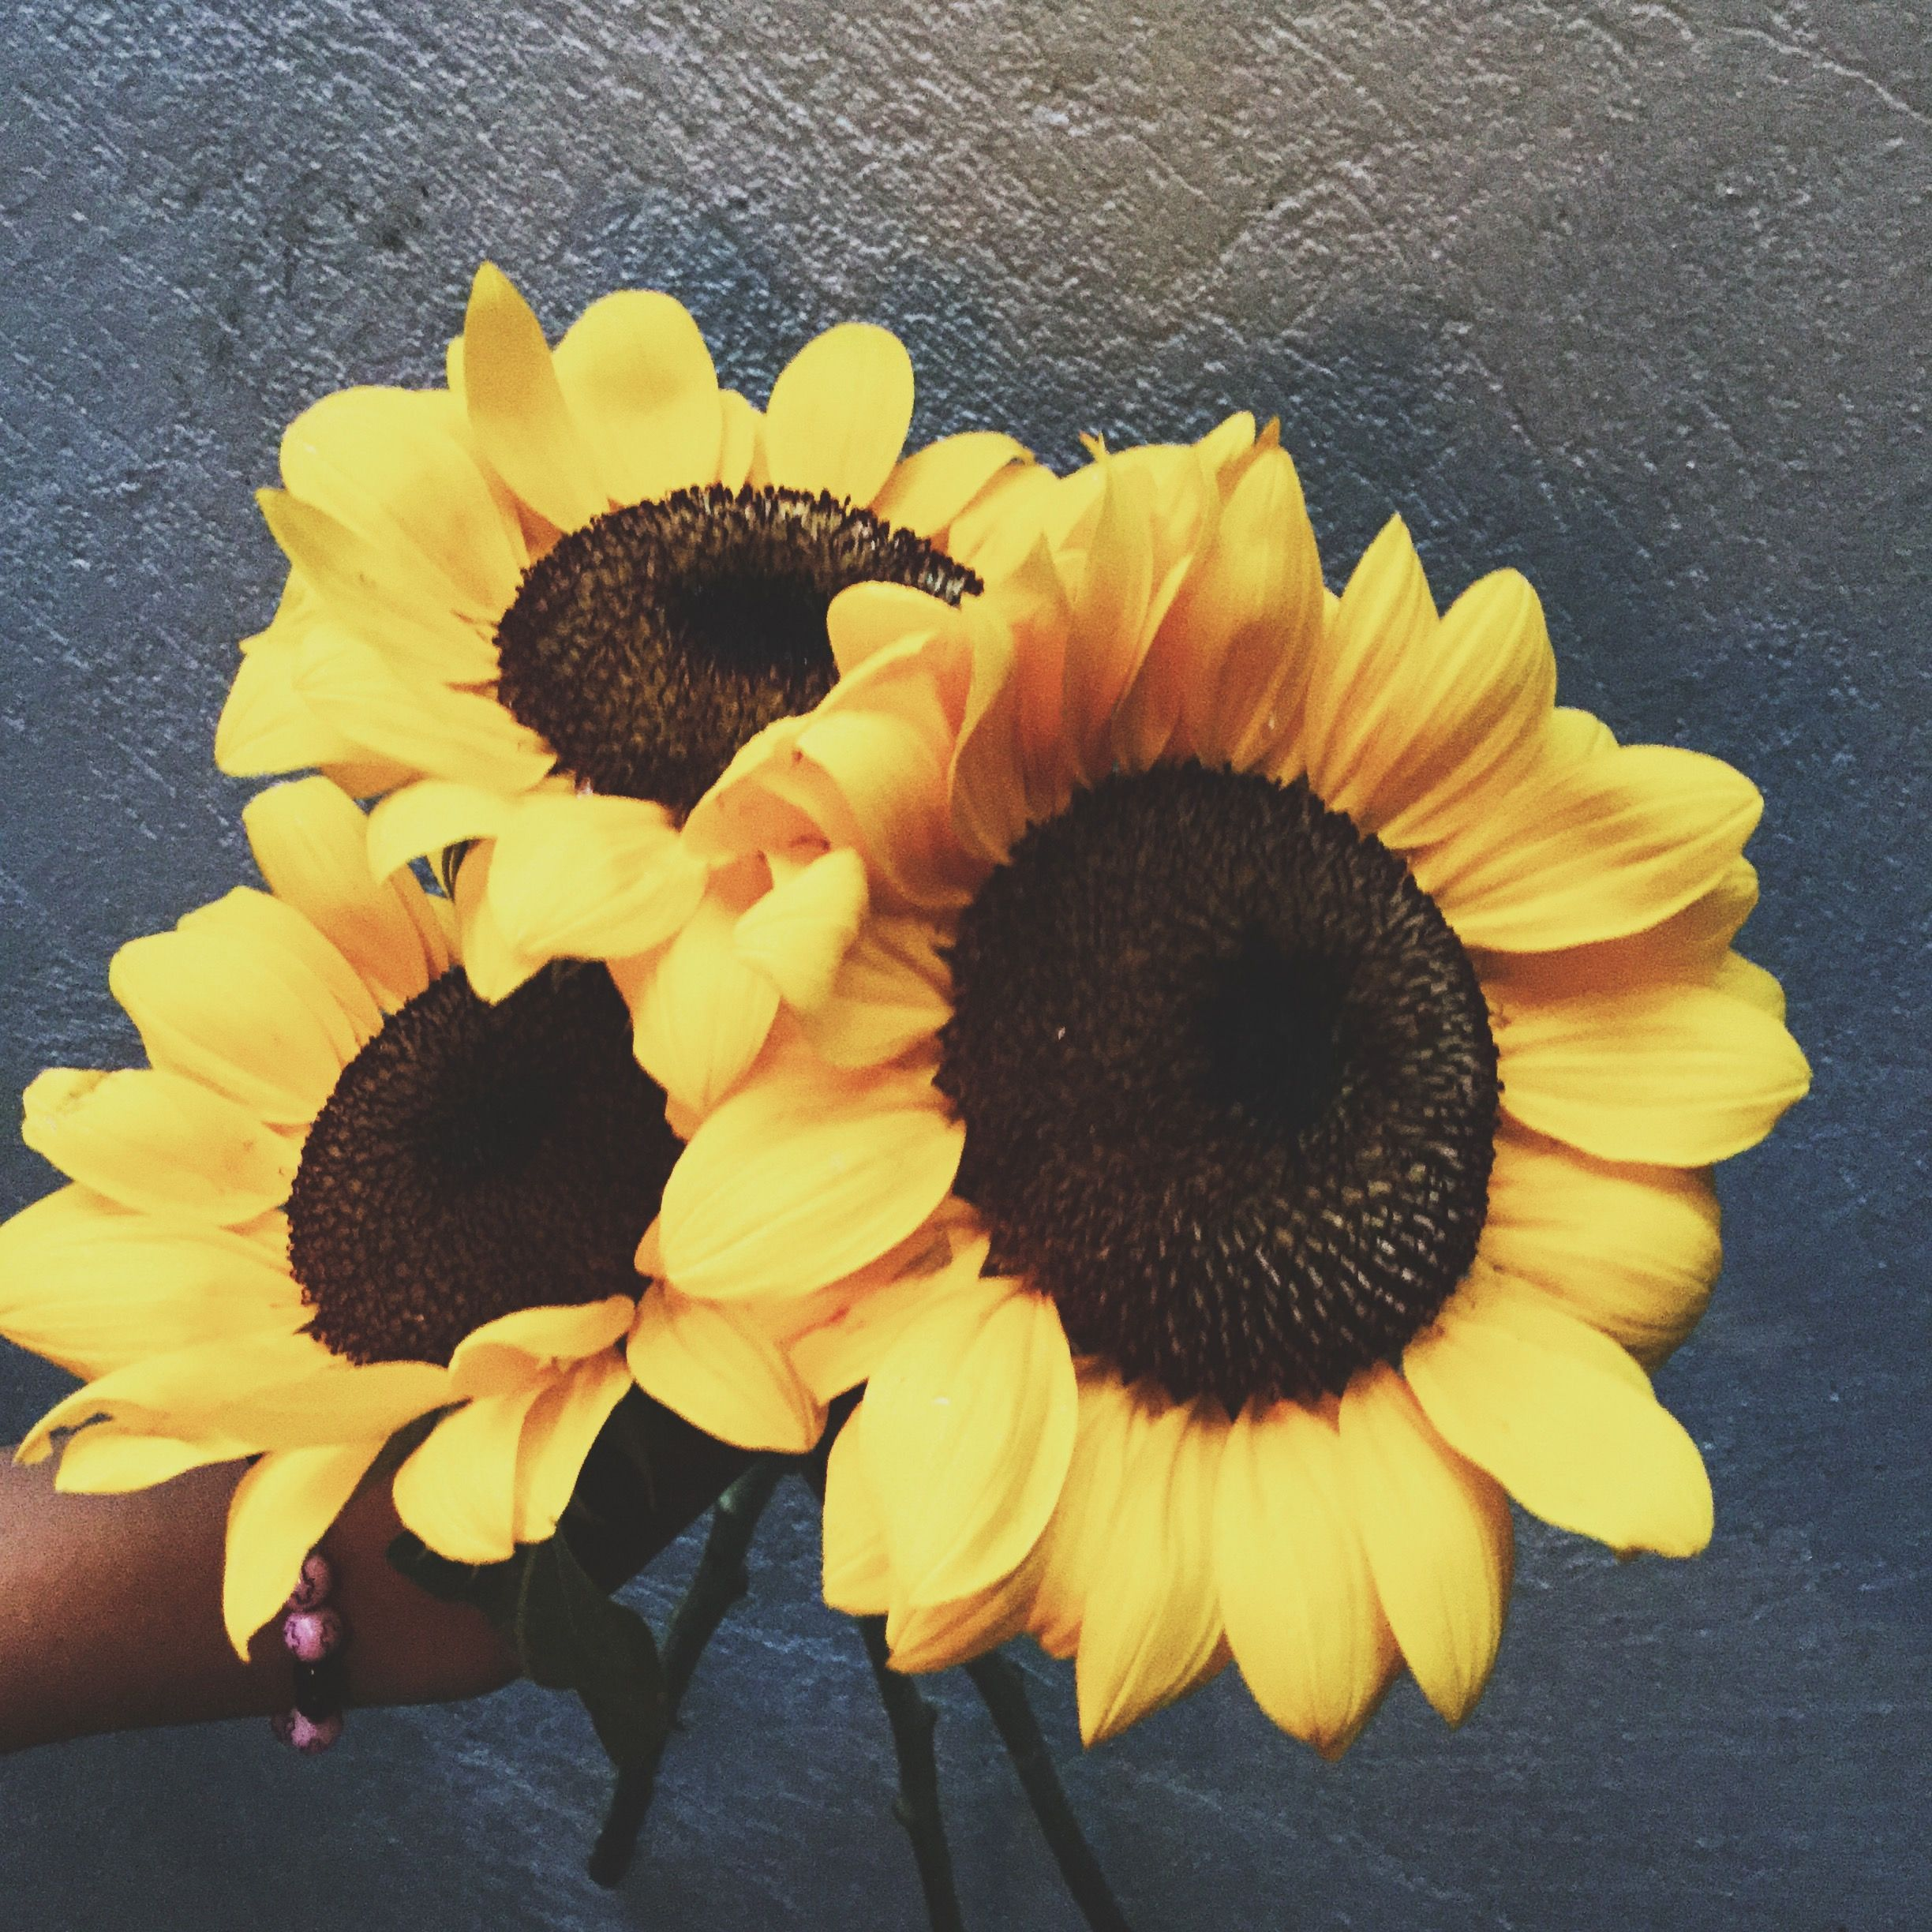 Sunflowers Aesthetic Appleofmyeye Artsy Pictures Flowers Floral Rings